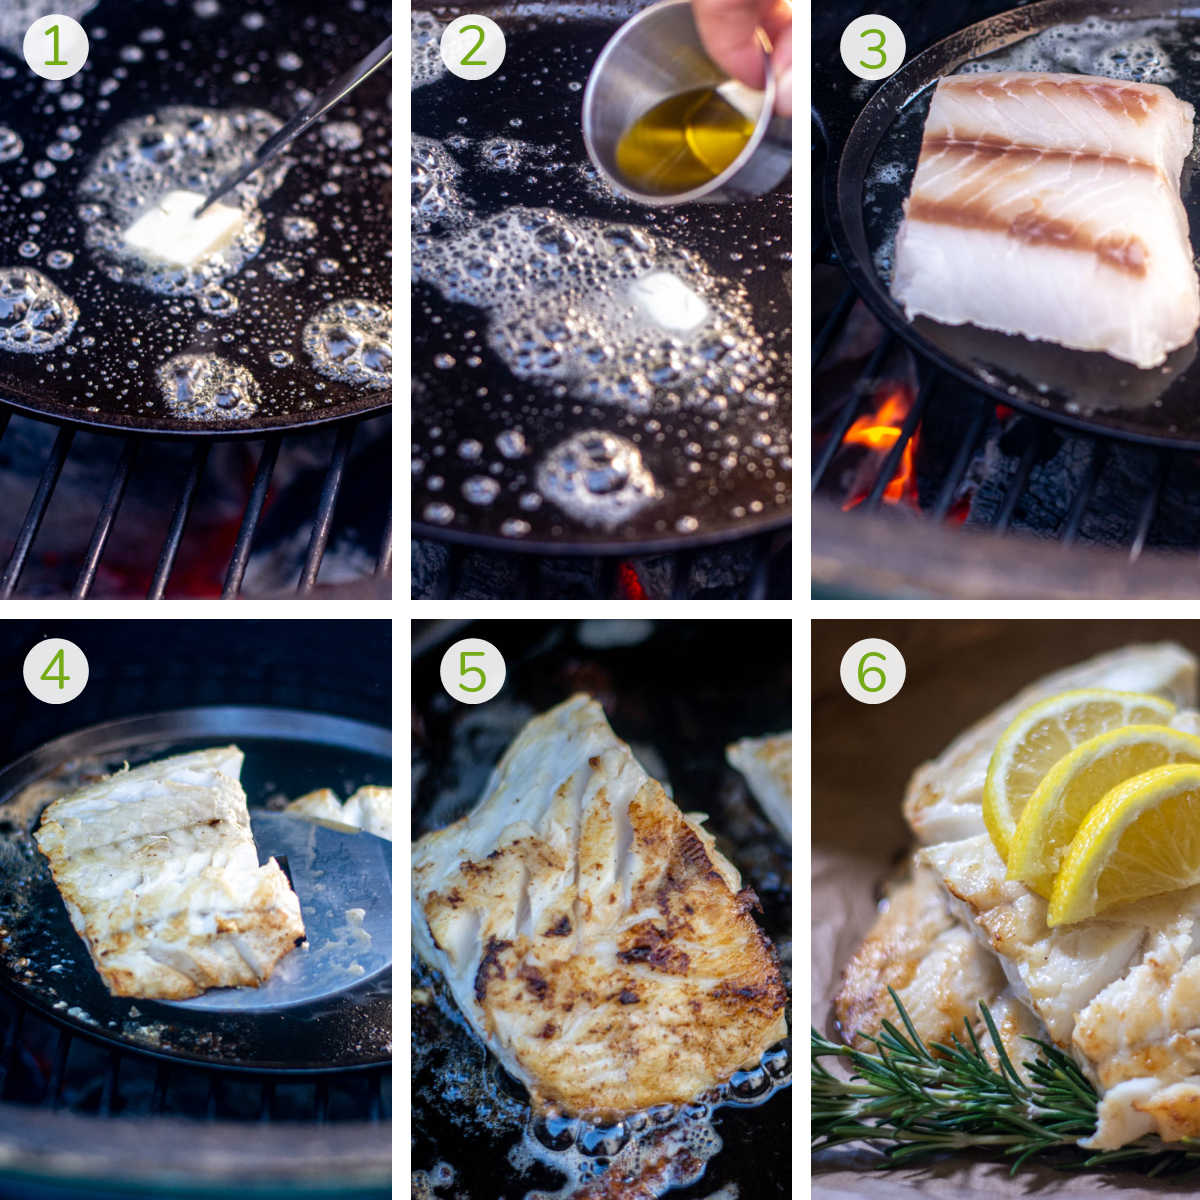 six process shots showing melting butter, adding olive oil, and pan searing a fillet of lingcod with the final photo of it being served with rosemary and lemon.